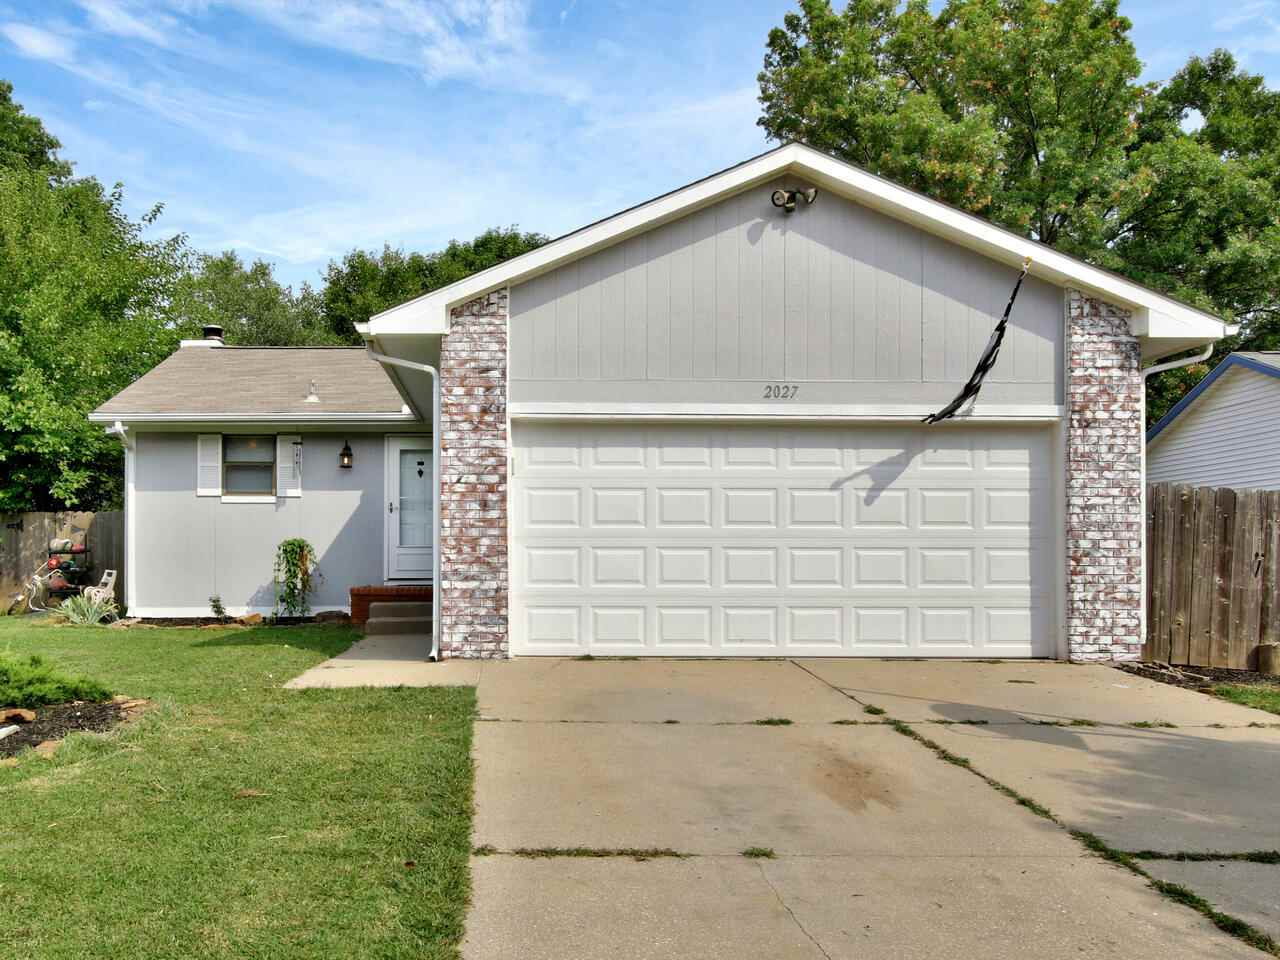 Welcome Home to this great 4 bedroom 2 bath full finished basement with a Pool! On a cul de sac and